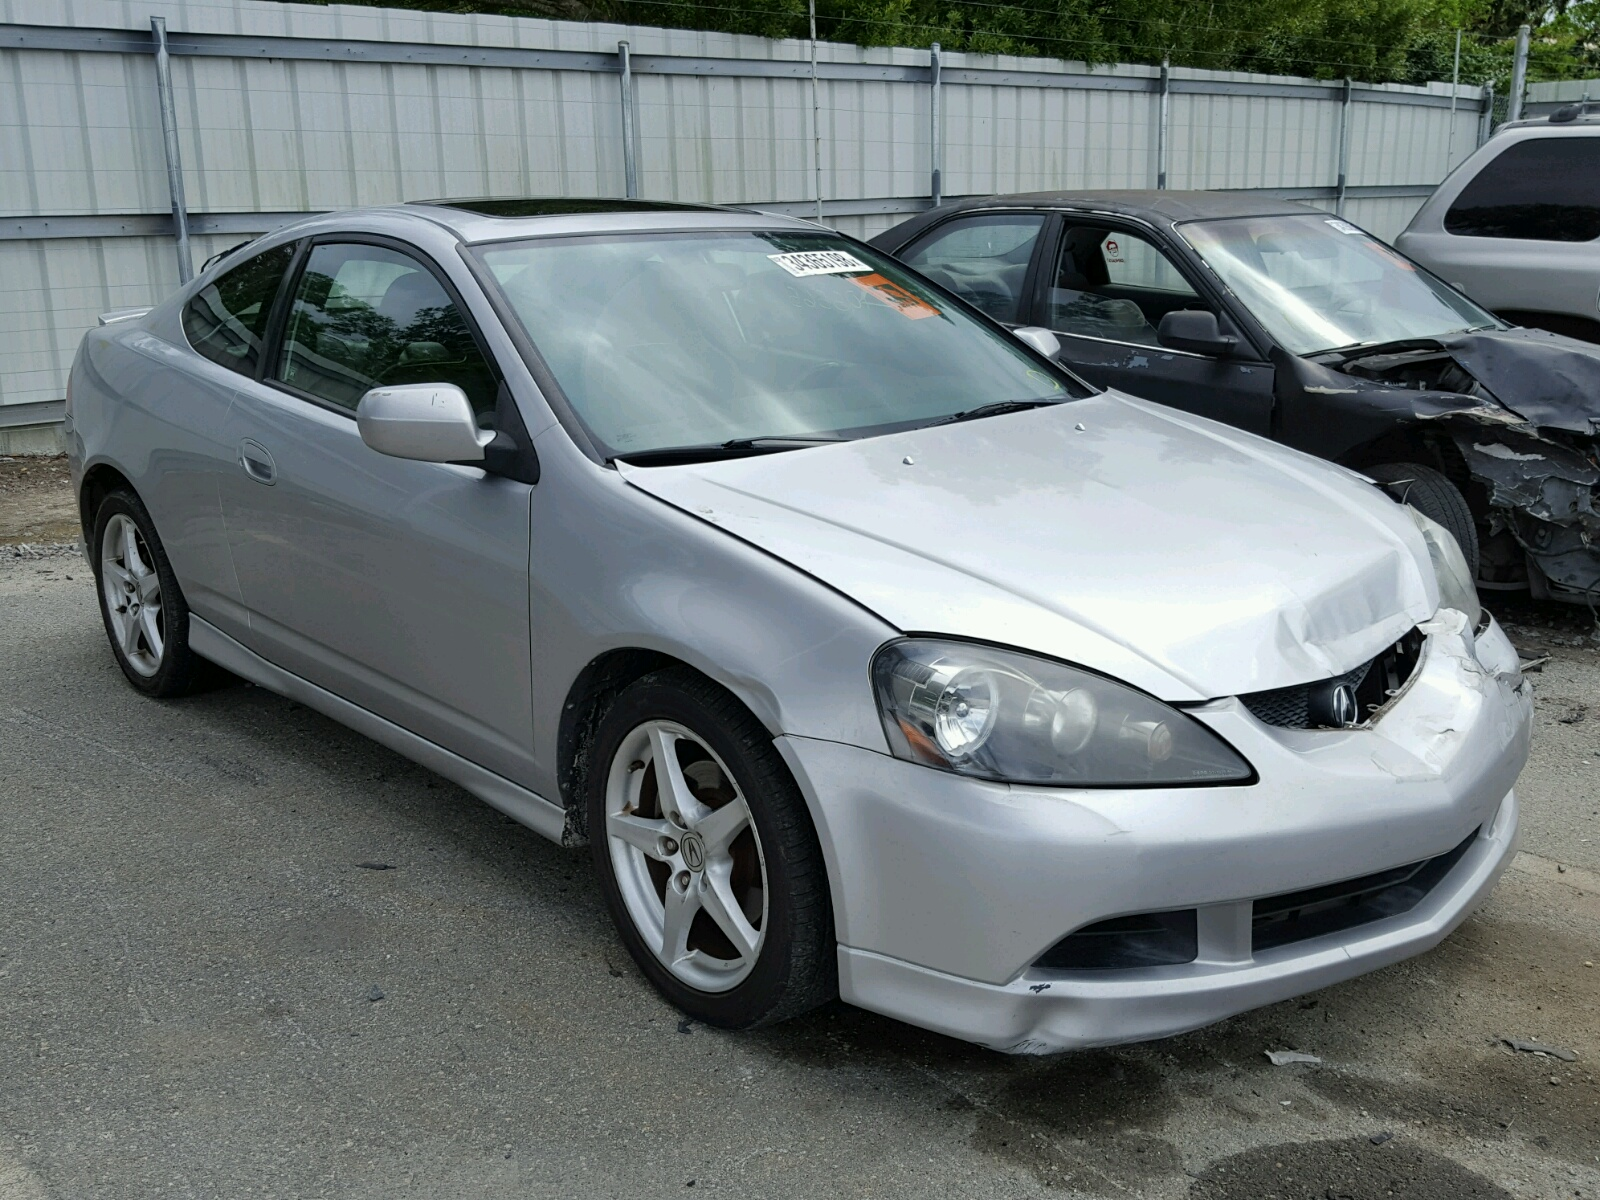 sale s priced rsx maryland or traded report type fs sell for showthread image this being acura to